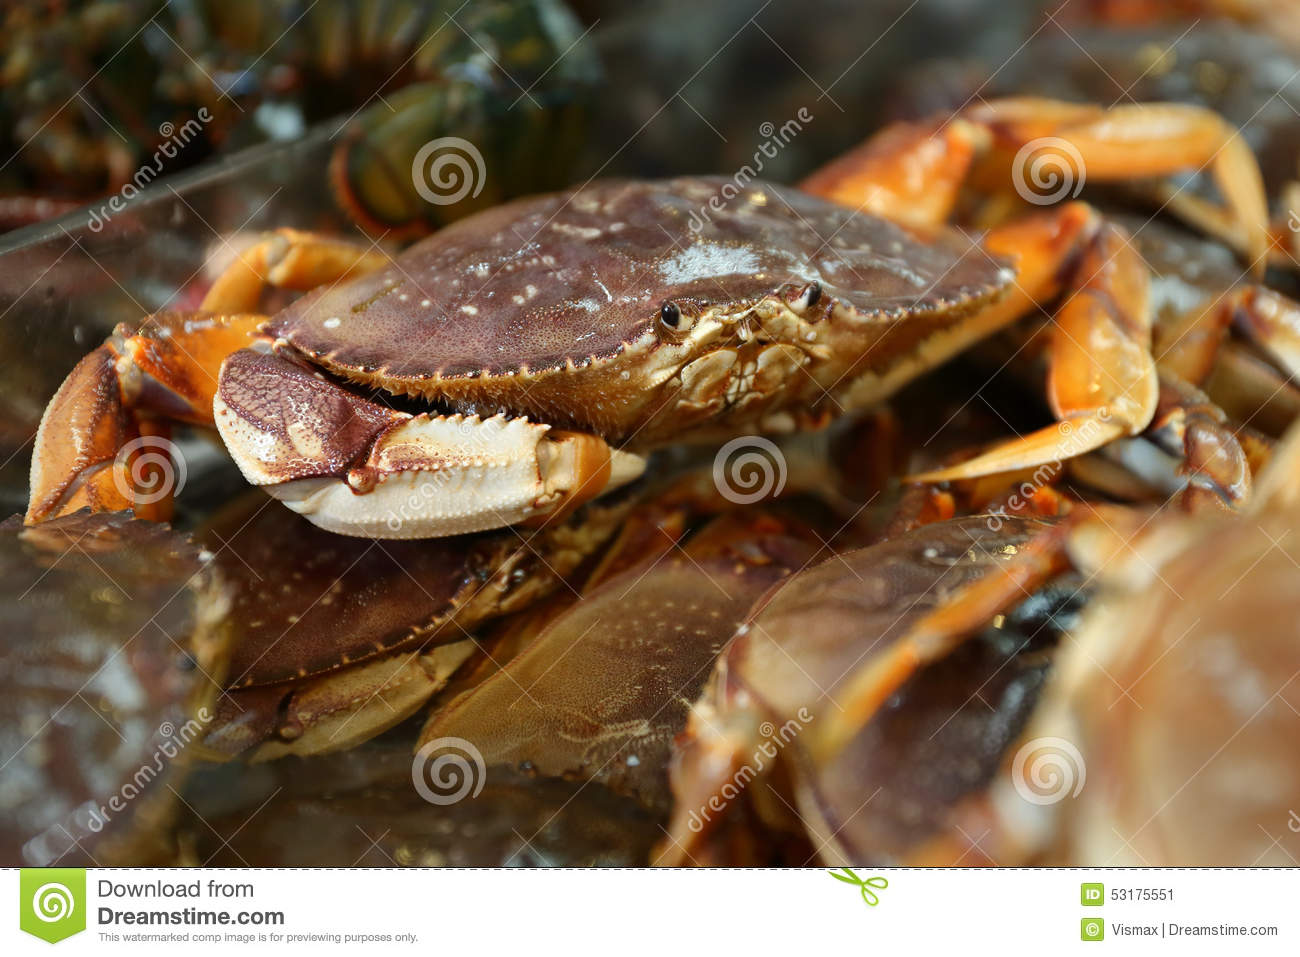 Seafood Market Live Dungeness Crabs Stock Image - Image of